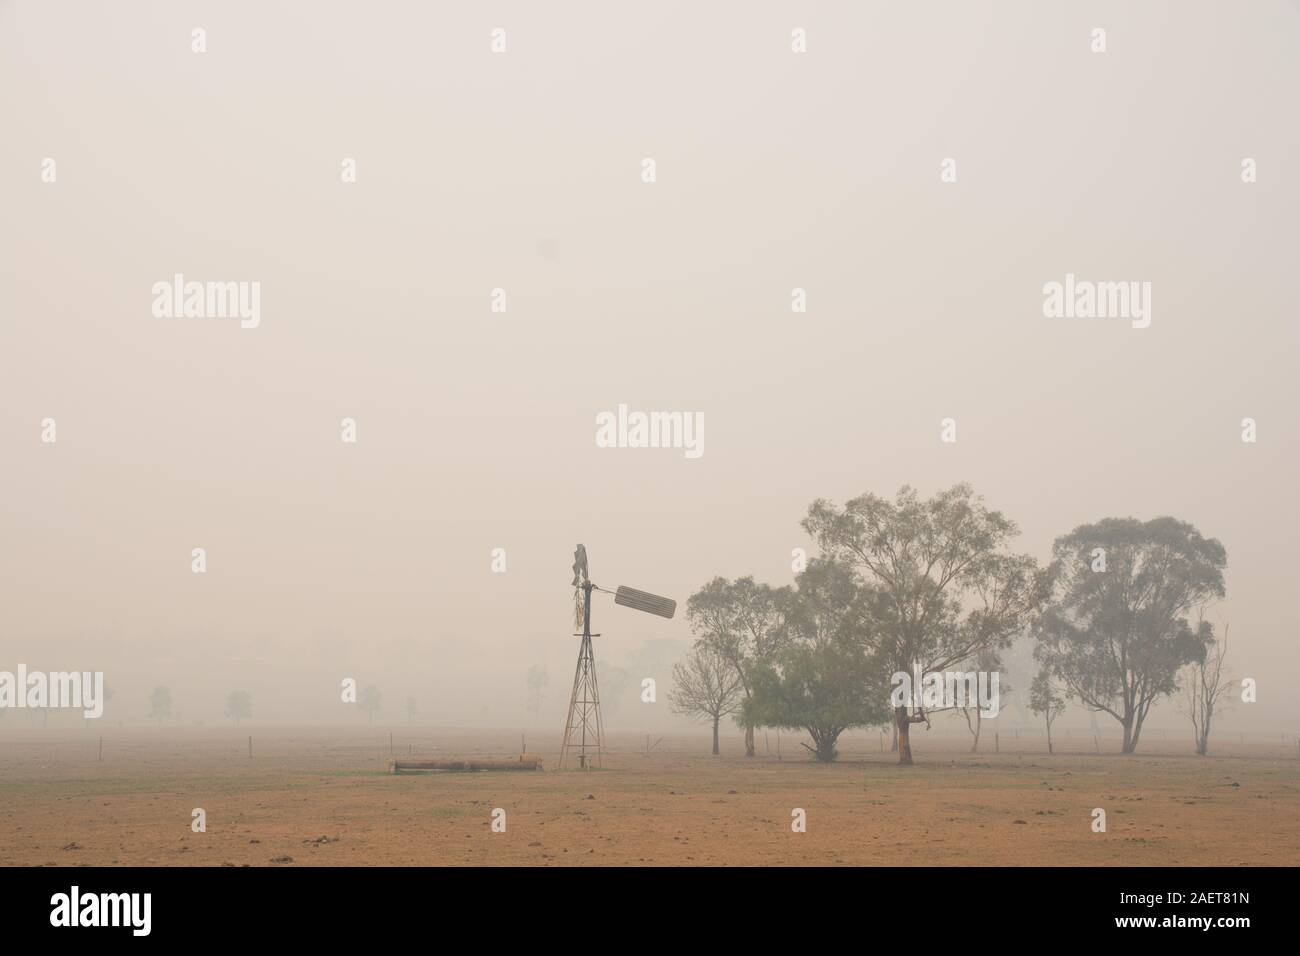 Heavy smoke pollution over a farm from bush fires 120km (70 miles) away.Tamworth Australia. Stock Photo